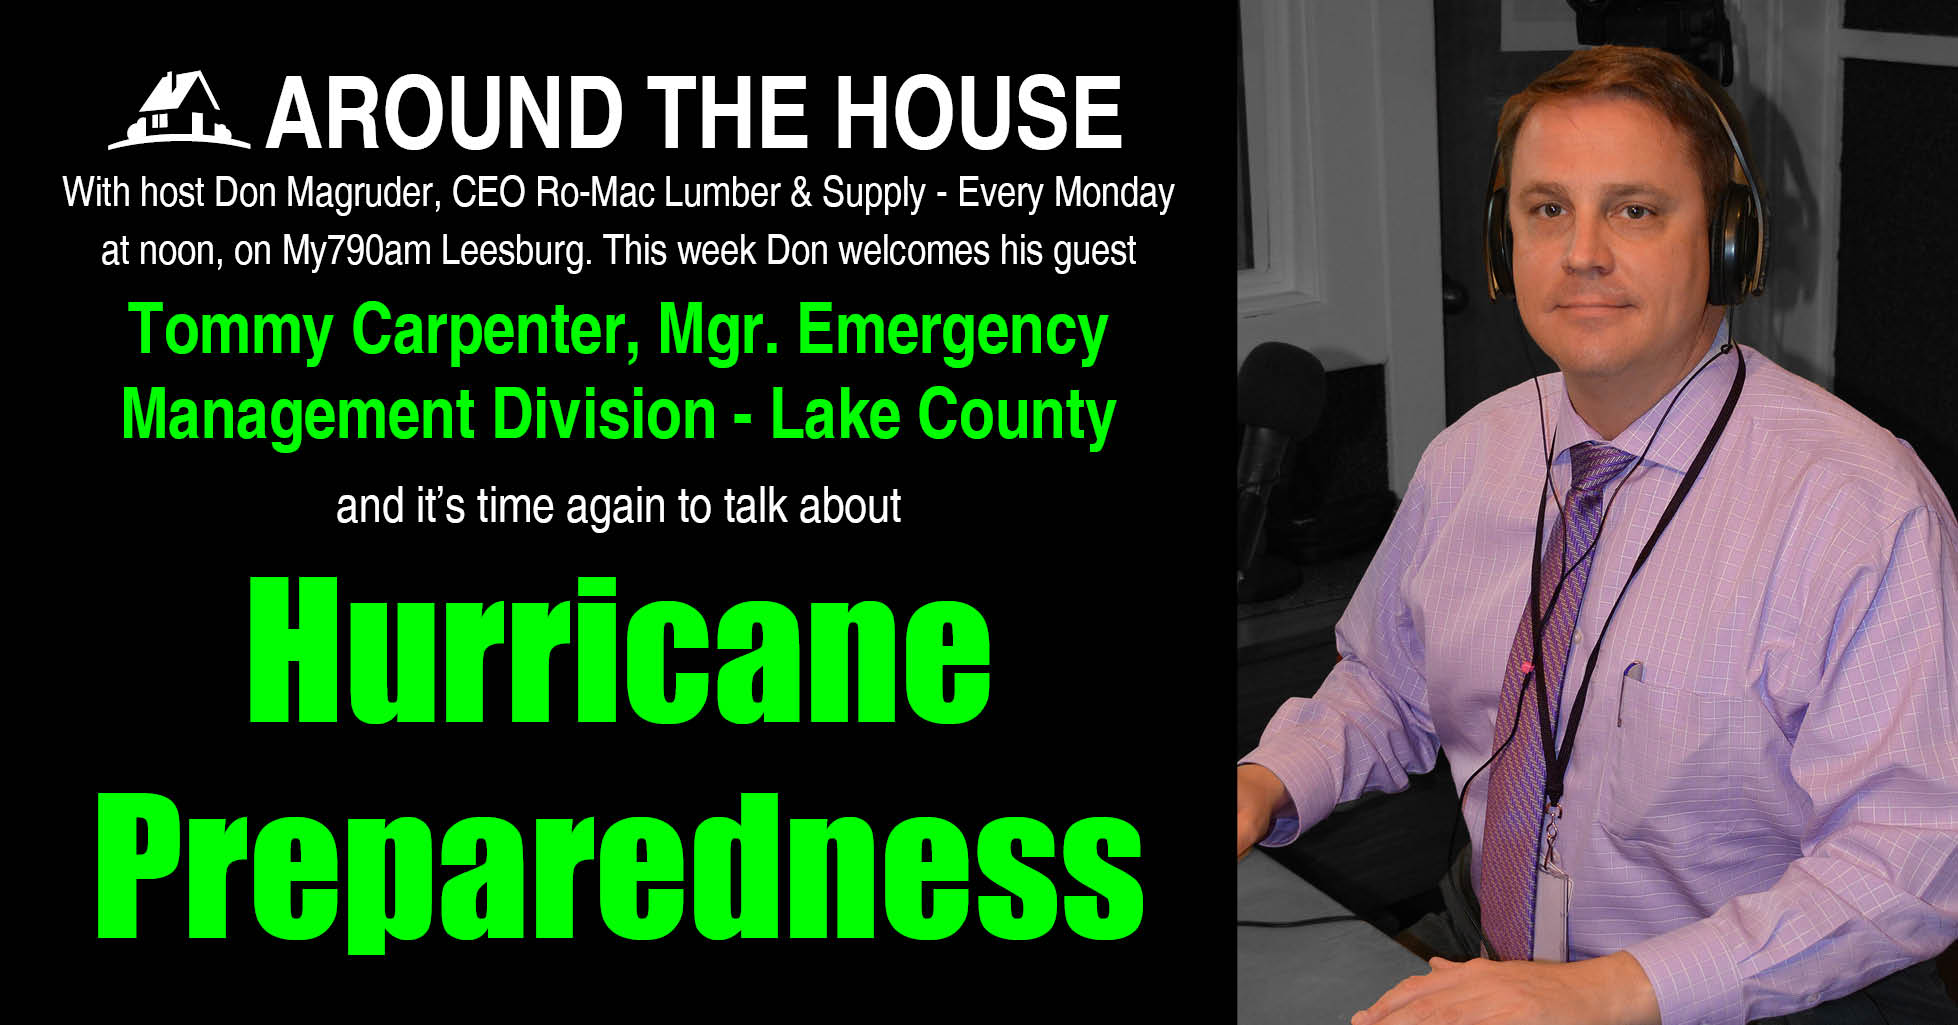 18-05-14 TomCarpenter-HurricanPreparedness